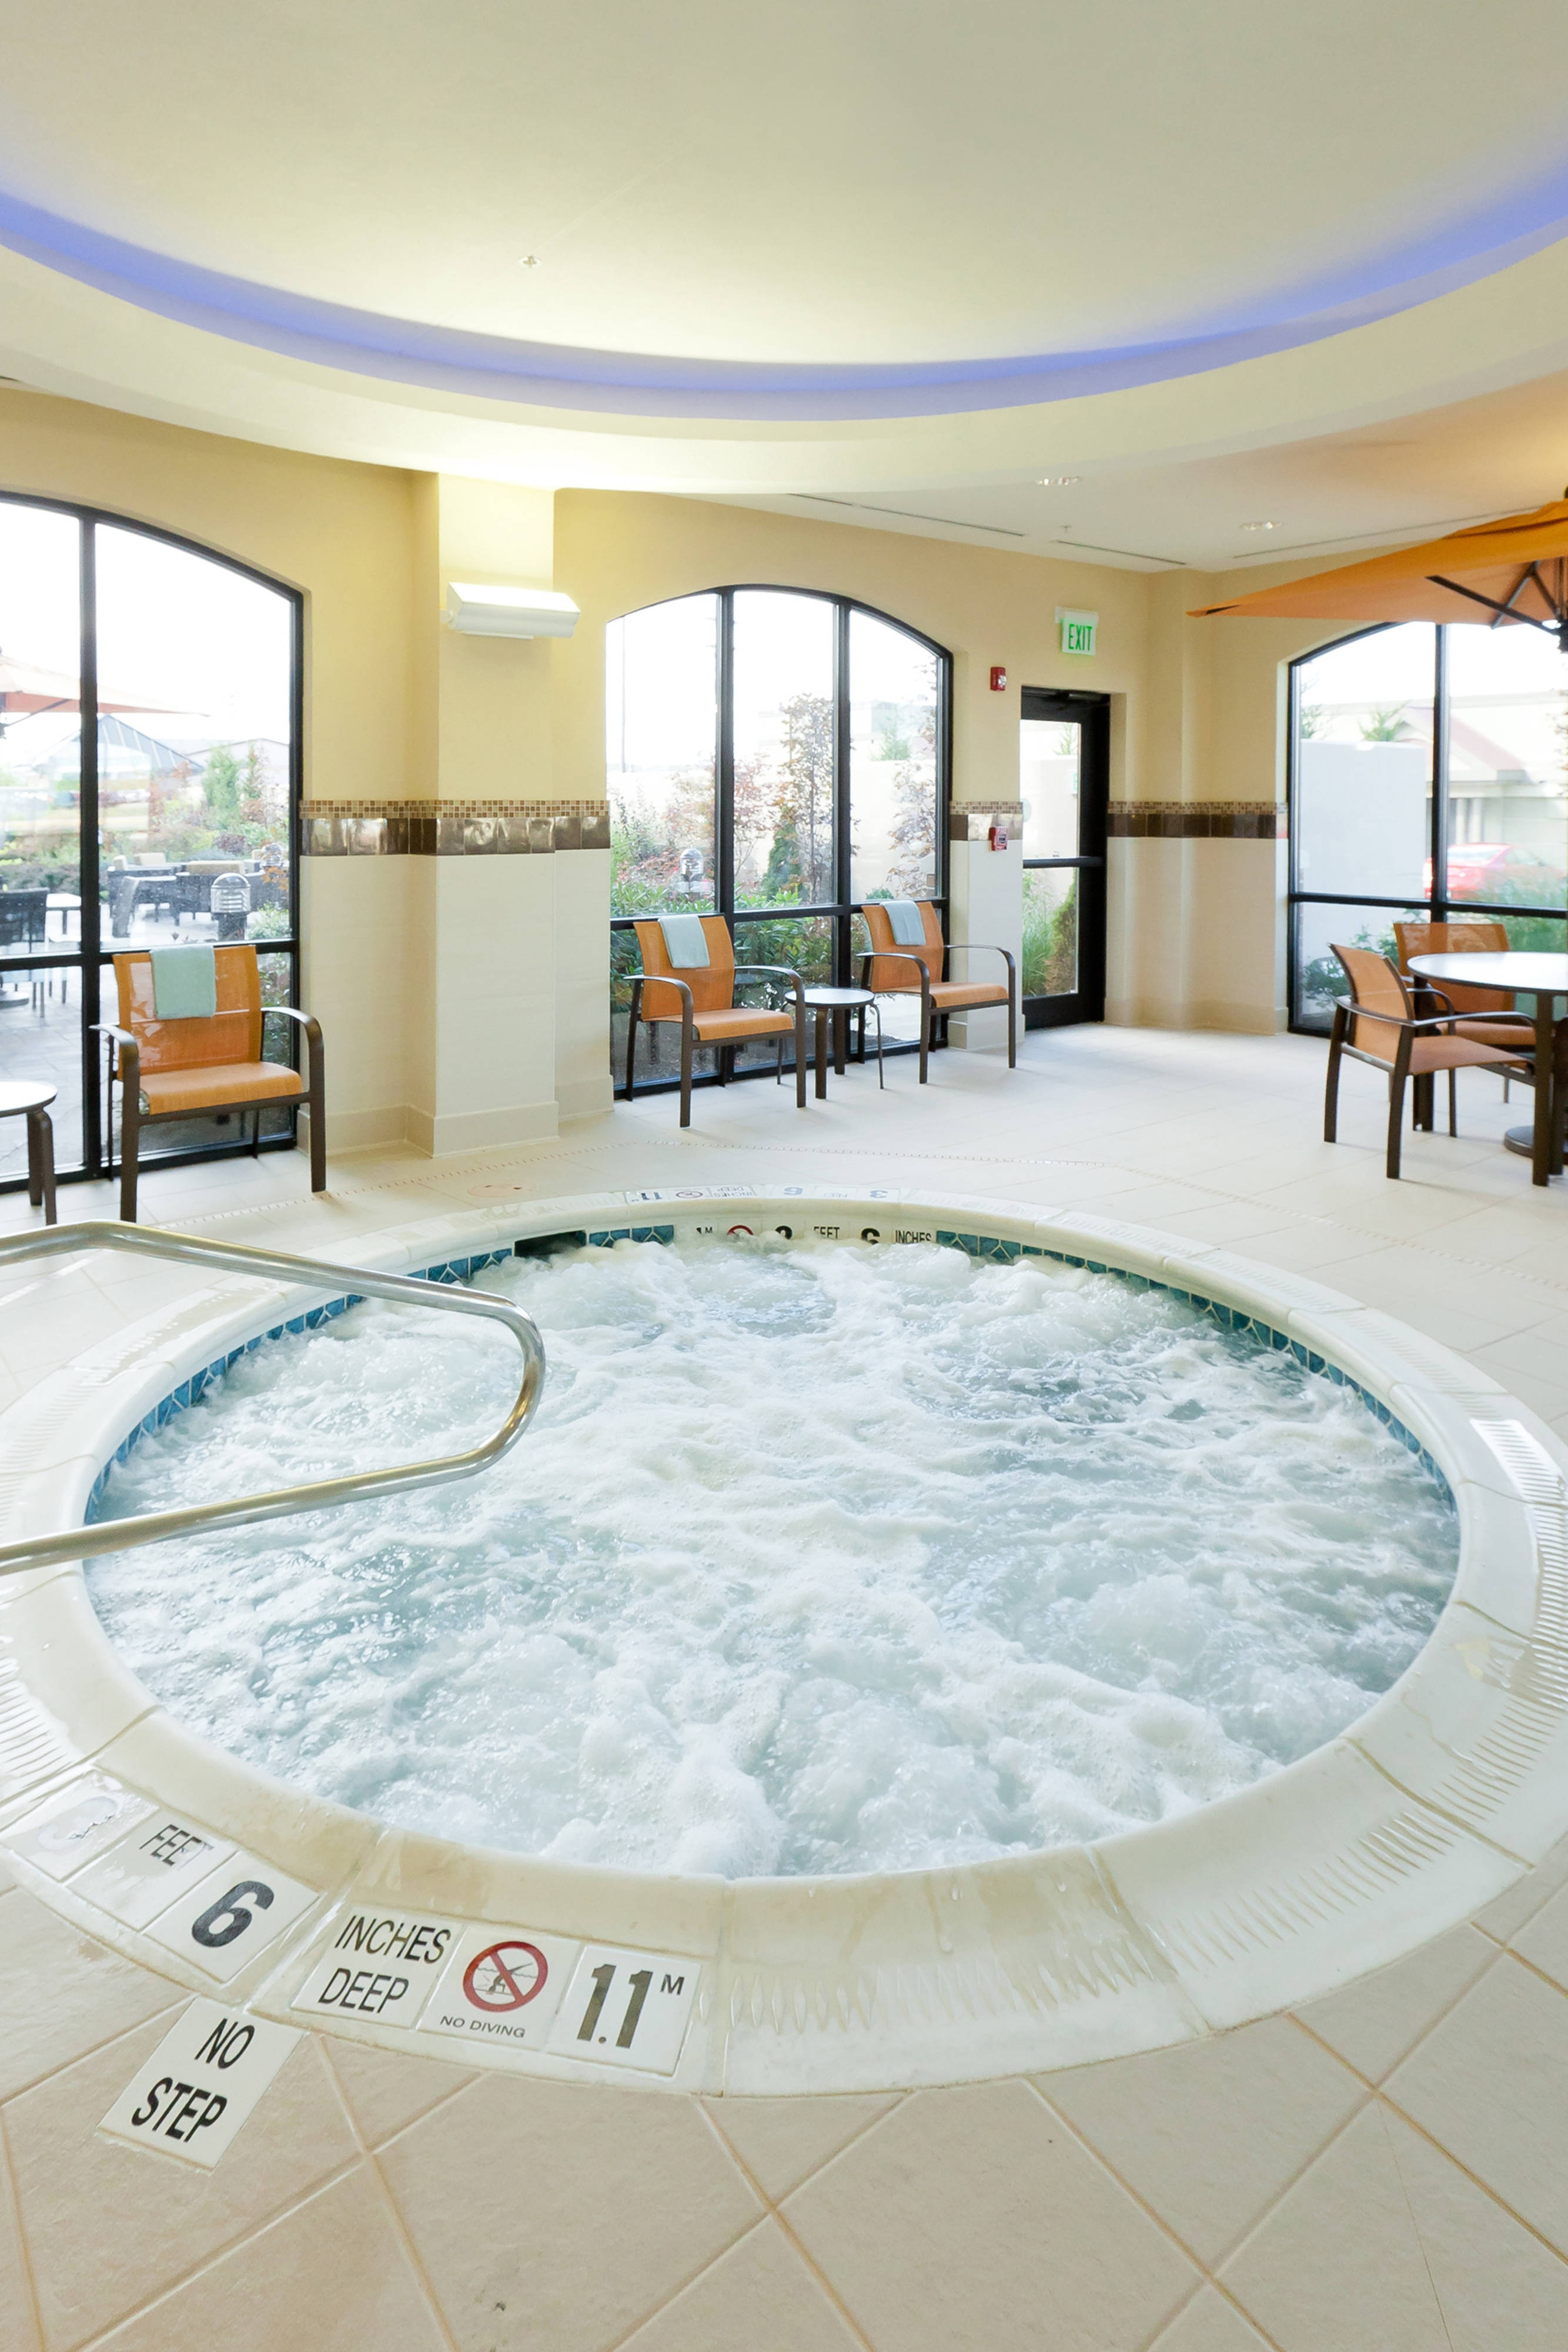 Buffalo hotel with whirlpool spa